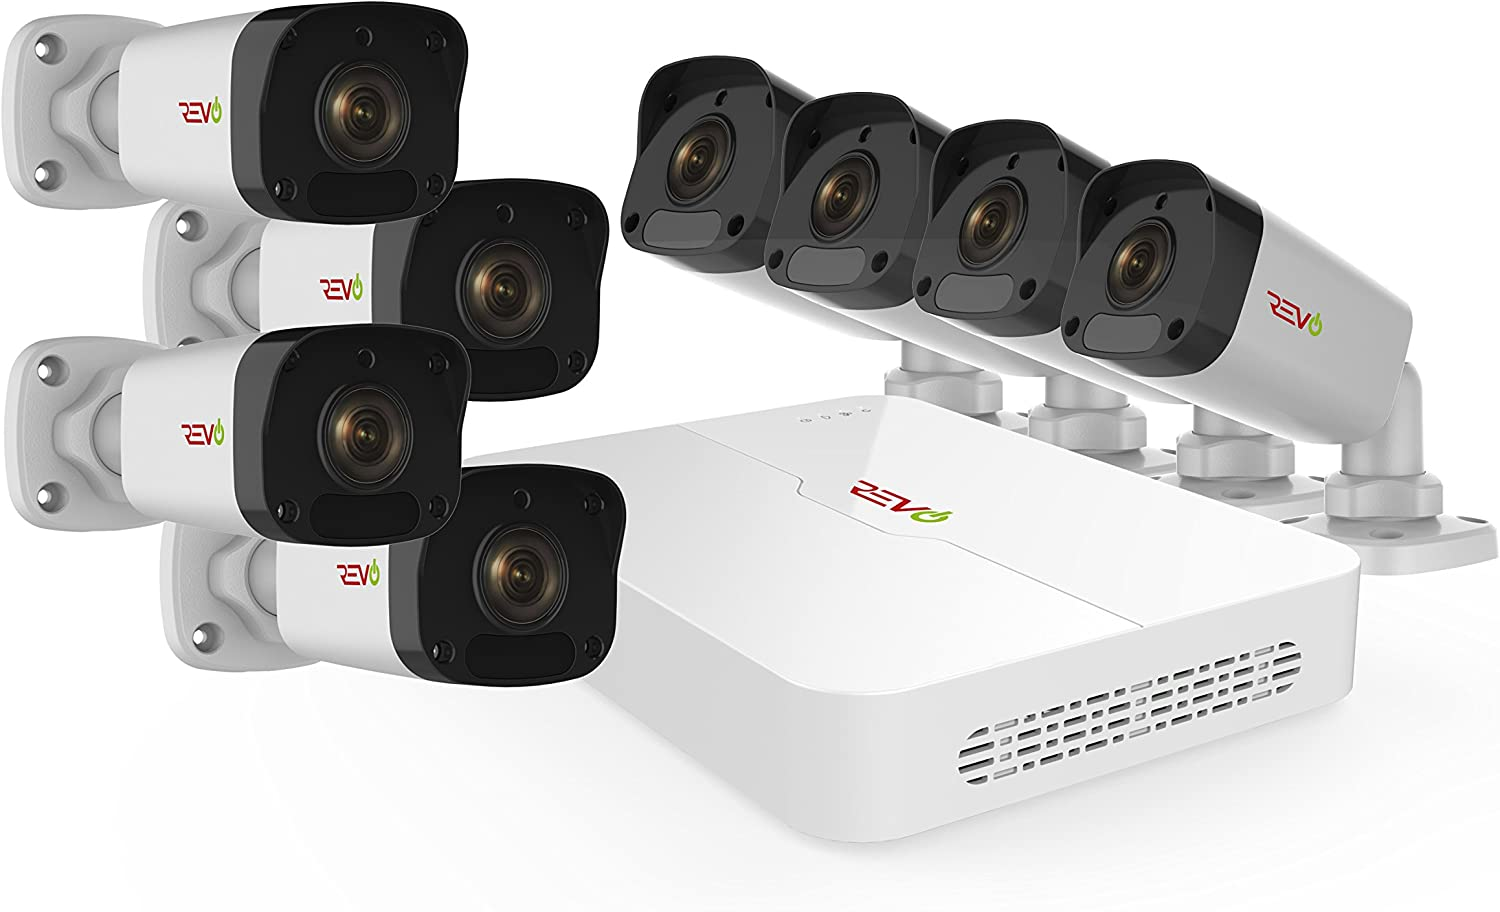 Revo America Ultra 8Ch. 2TB HDD 4K IP NVR Security System – Fixed Lens 4 x 1080p IP Bullet Cameras – Remote Access via Smart Phone, Tablet, PC MAC